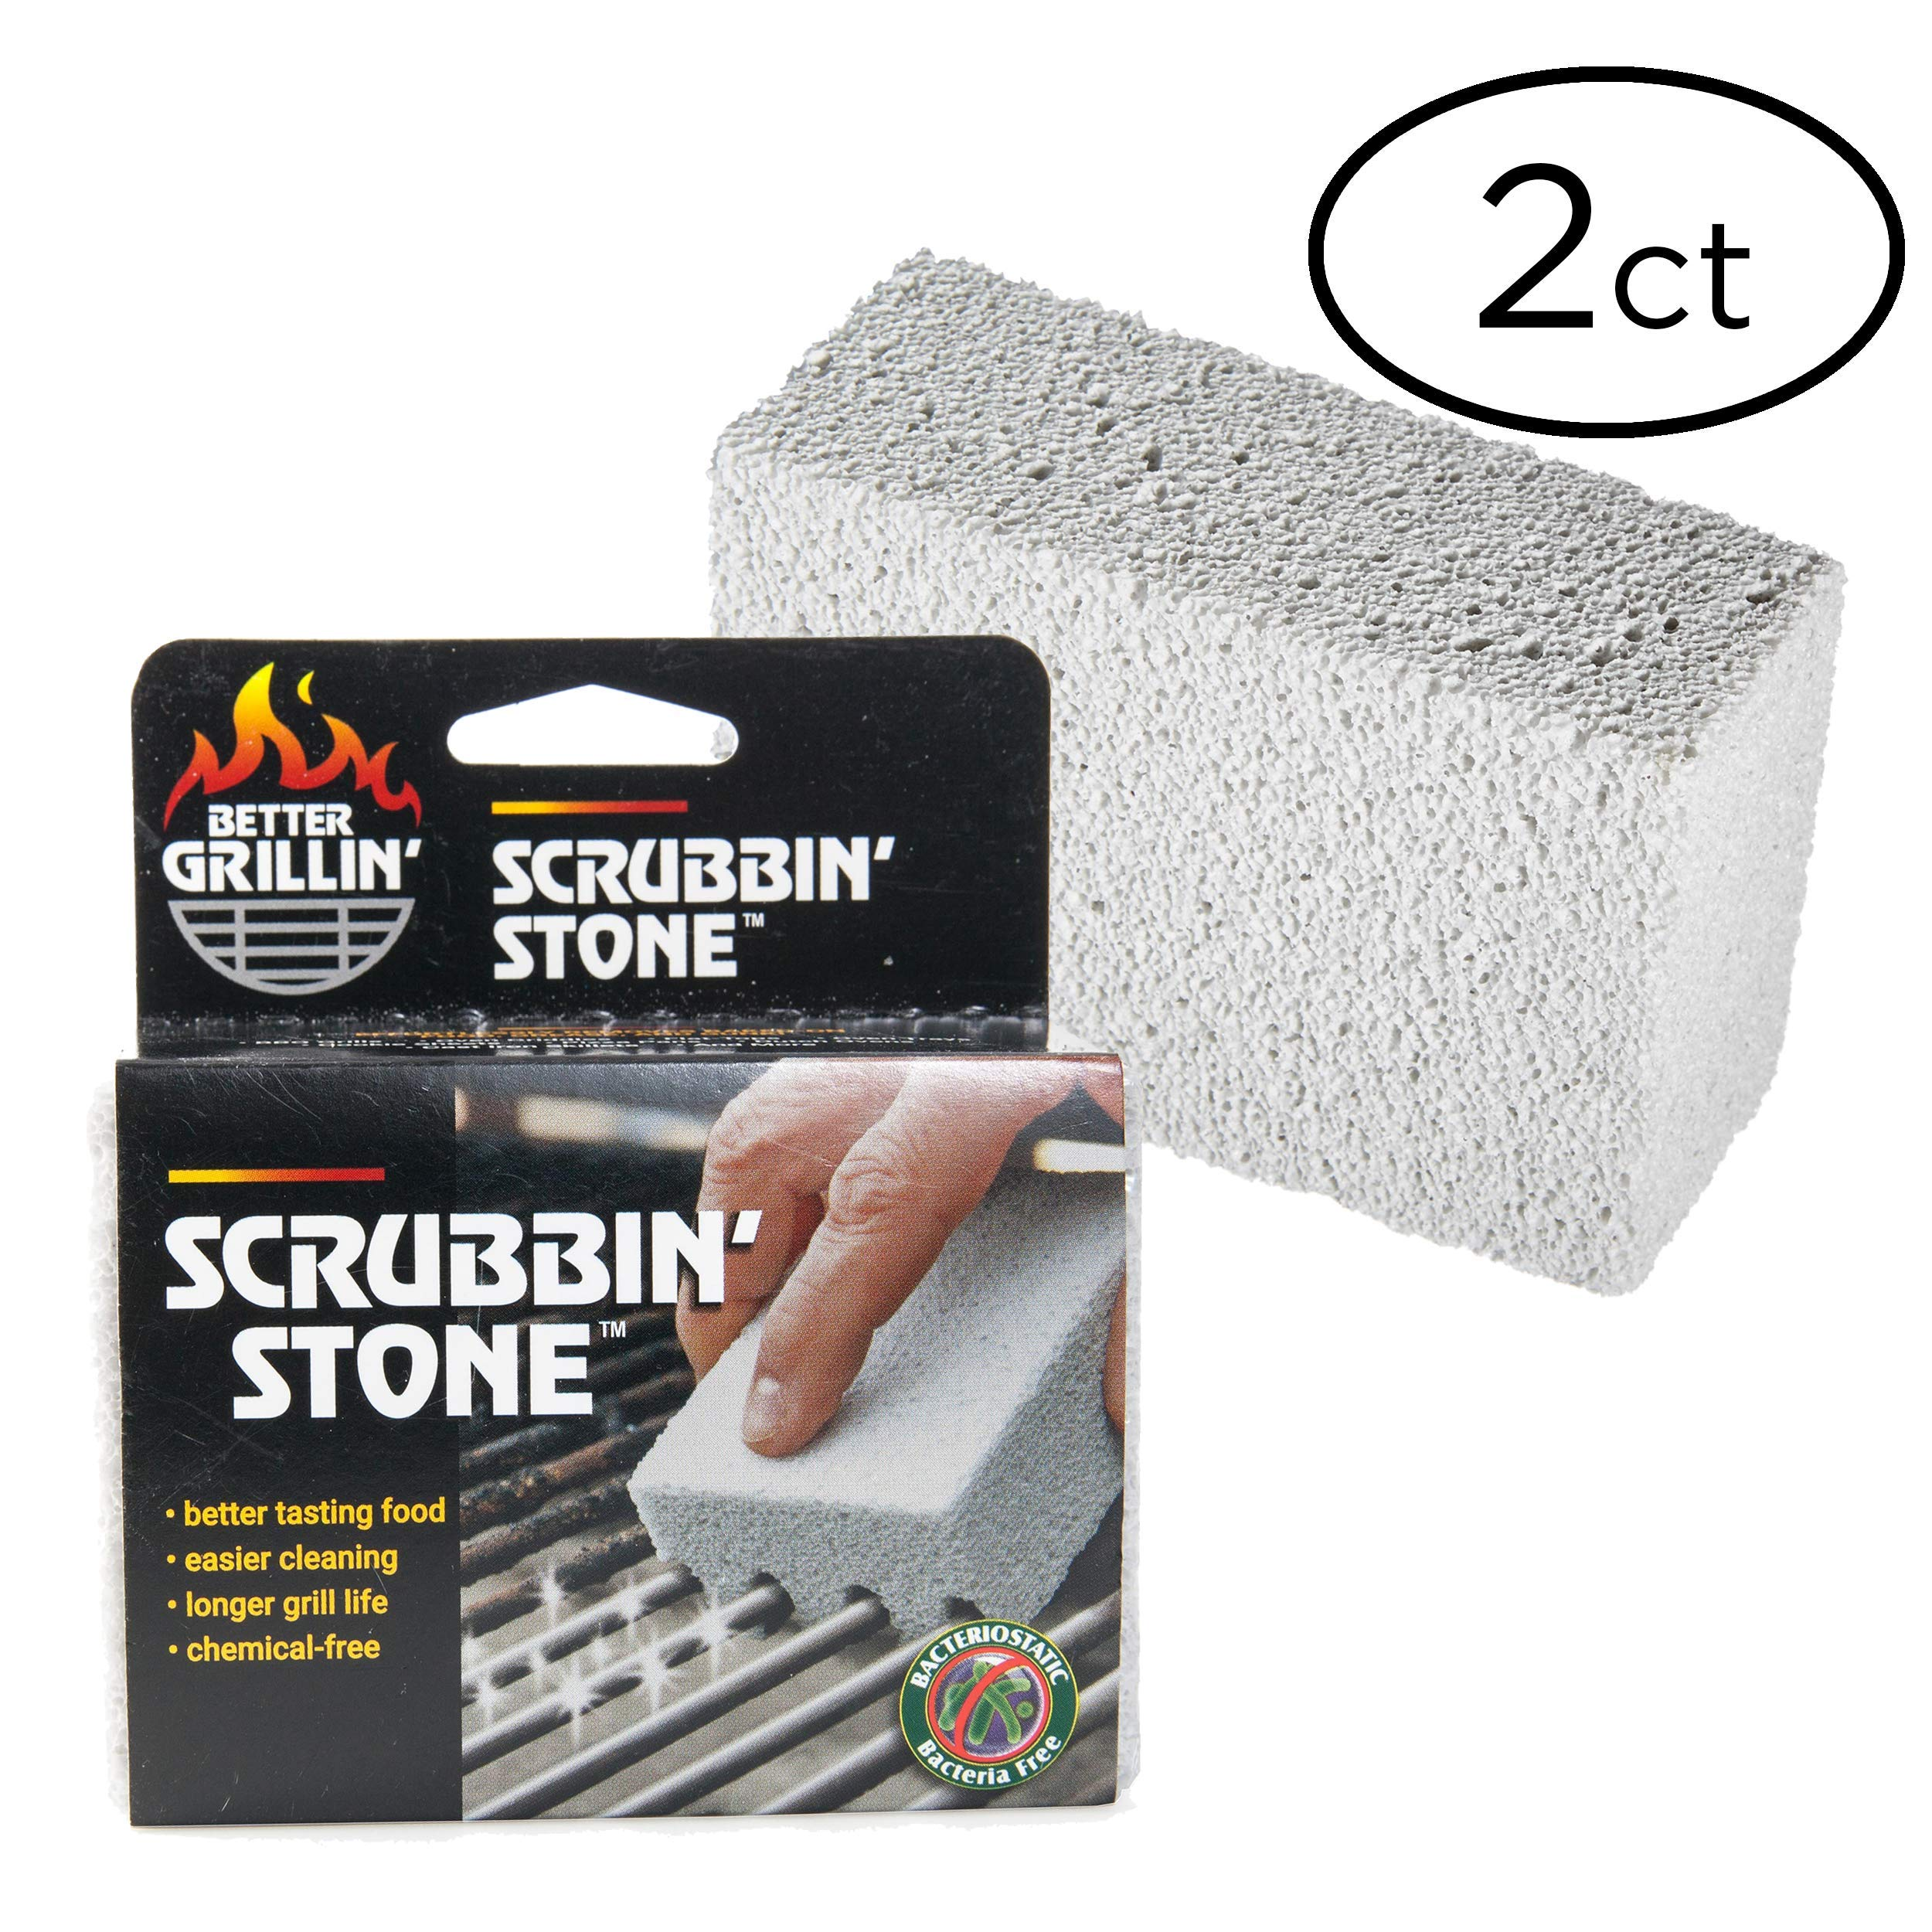 Better Grillin' Scrubbin' Stone Grill Cleaner - Scouring Brick/Barbecue Grill Brush/Barbecue Cleaner - Advanced Green Technology Easily Removes Grime and Grease from BBQ, Grills, Griddles, Racks (2)